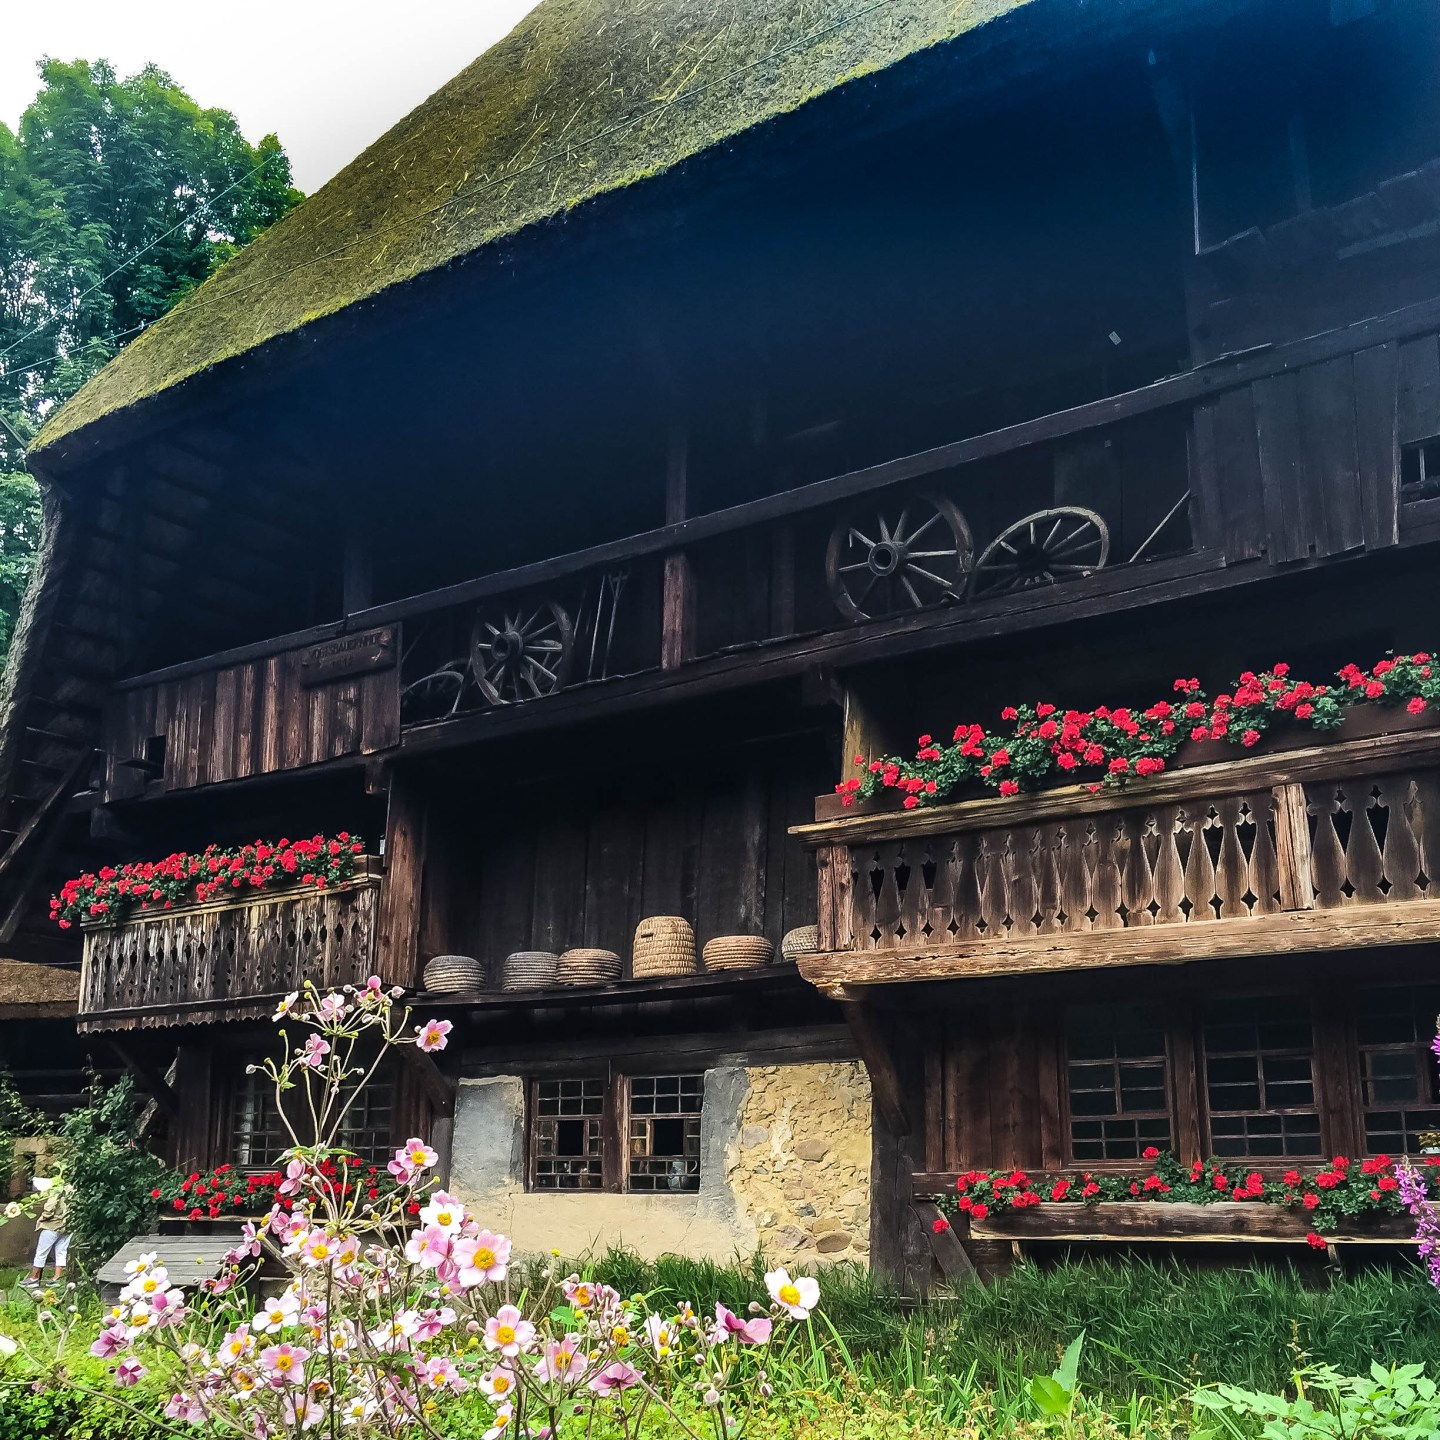 The outside of the oldest farmhouse at the Black Forest Open Air Museum. Note the beehives on the ledge!